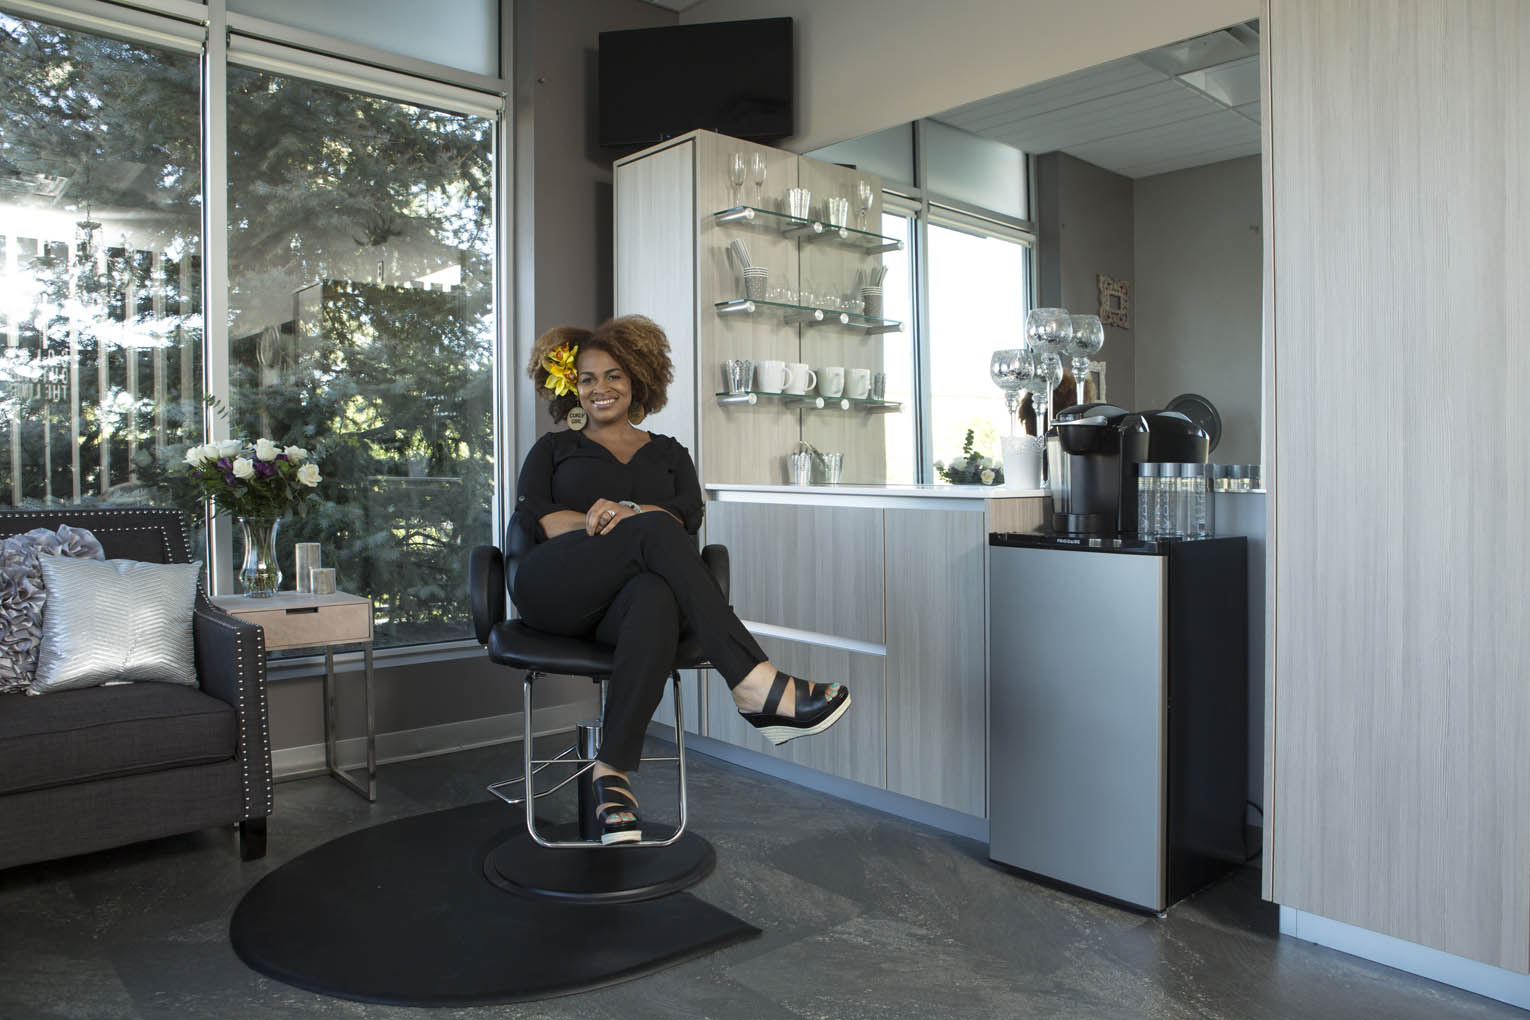 Interior of a salon studio